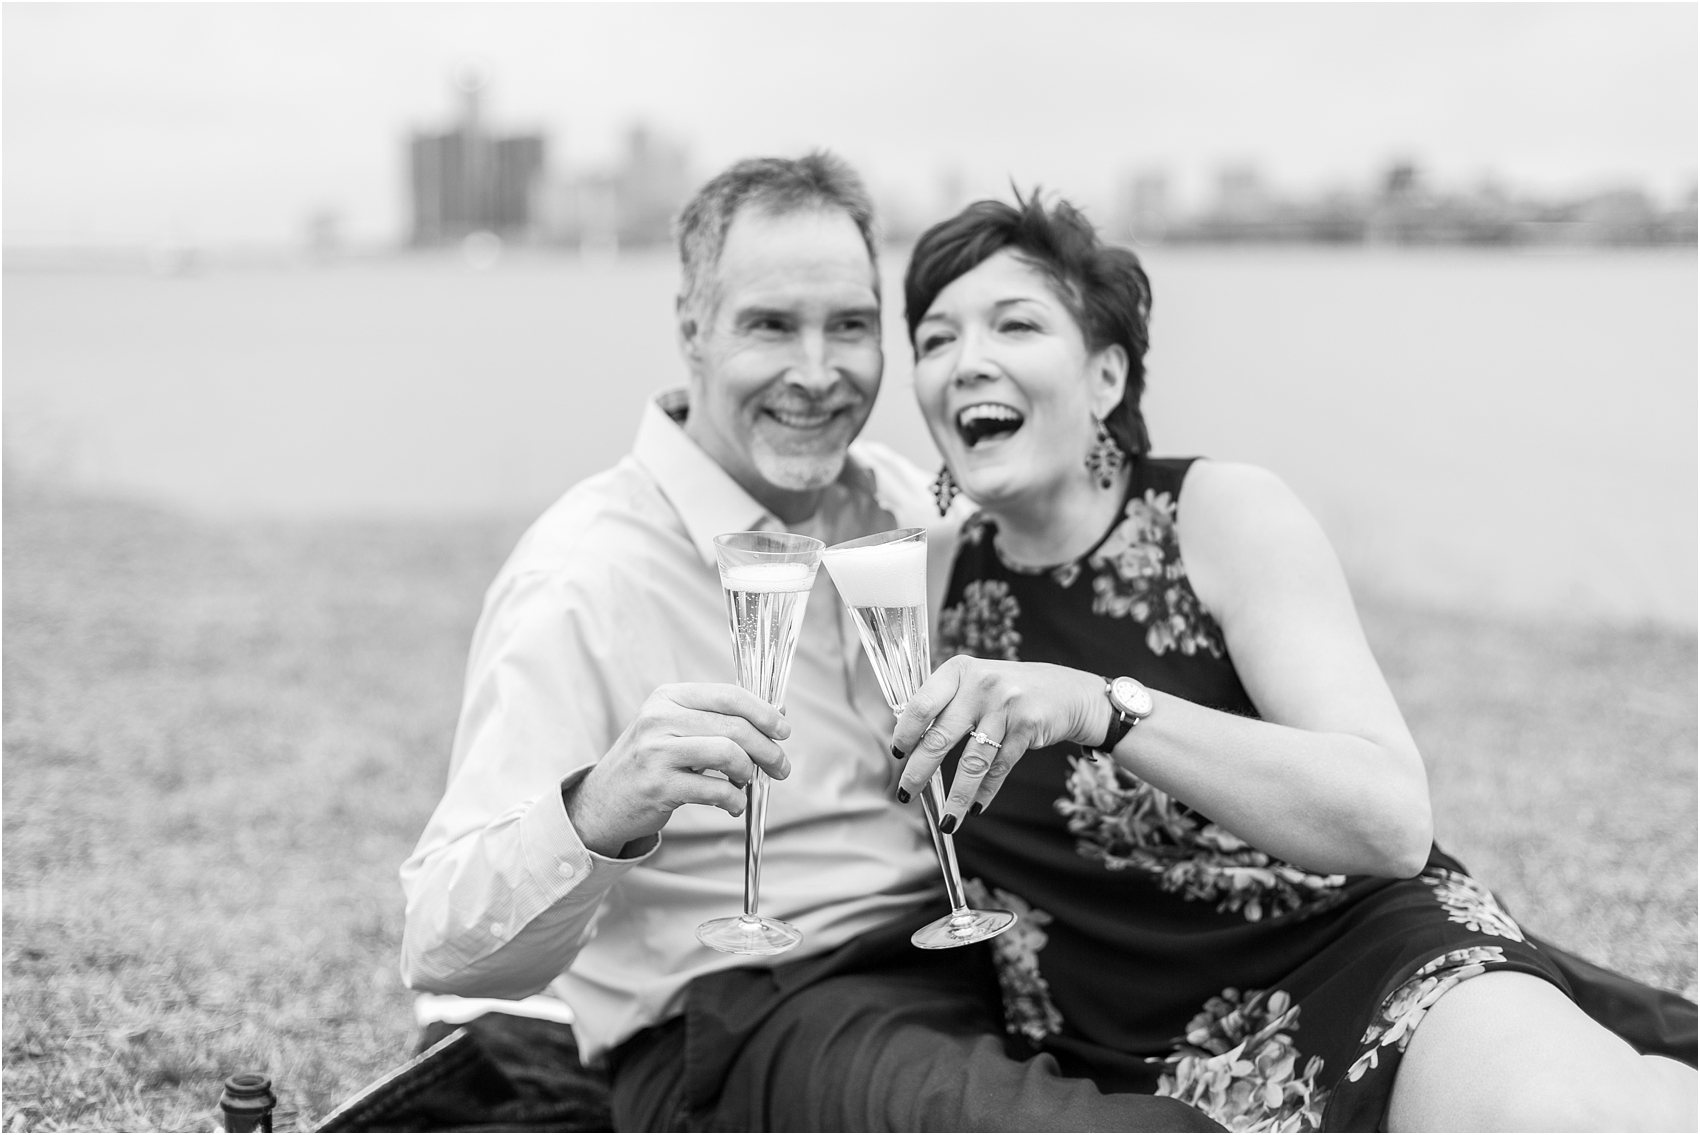 emotional-candid-romantic-engagement-photos-in-detroit-chicago-northern-michigan-by-courtney-carolyn-photography_0016.jpg